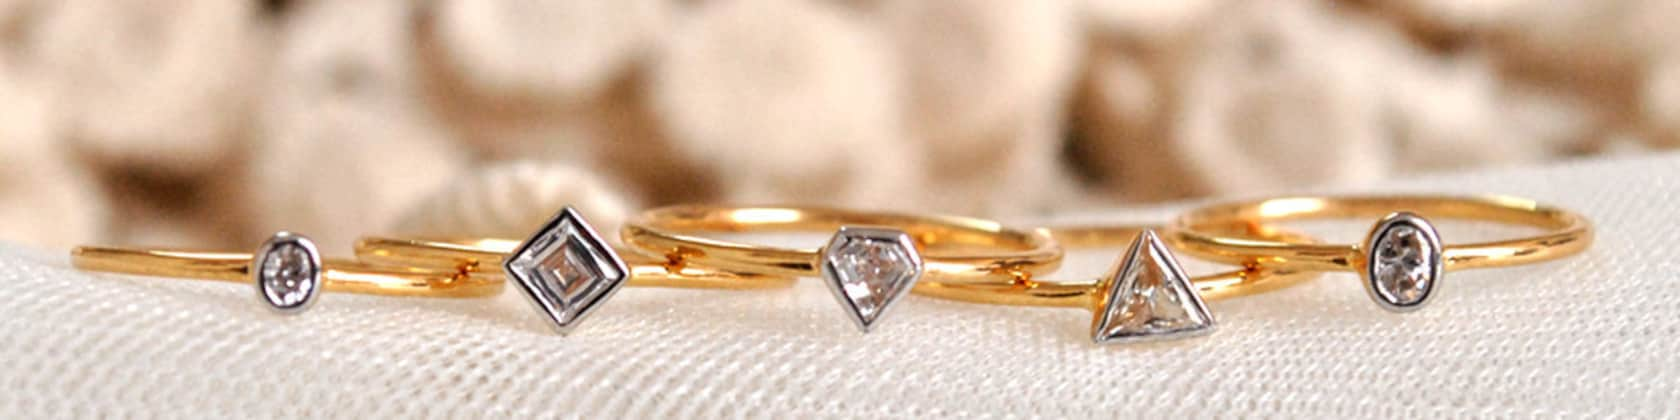 Fine Rings Beautiful Wedding Ring Trio 3 Rings Delicate Jewelry New Gold Plated T 60 Comfortable Feel